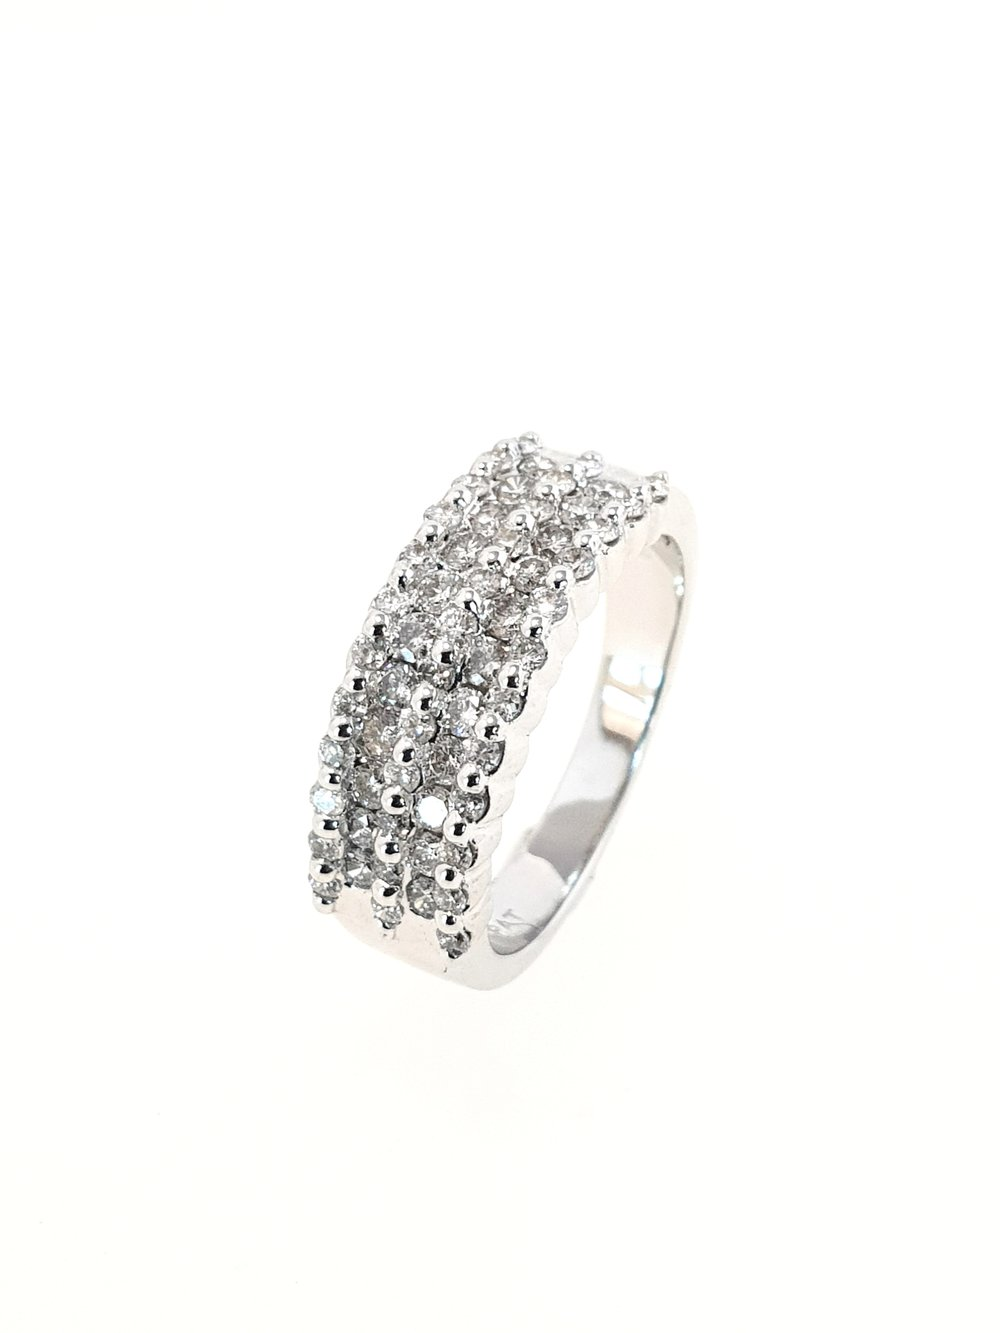 14ct White Gold 5 Row Band Ring  Diamond Weight: 1.00ct  Colour: H  Clairty: I1  Our Price: £1,500  Stock Code: Y774